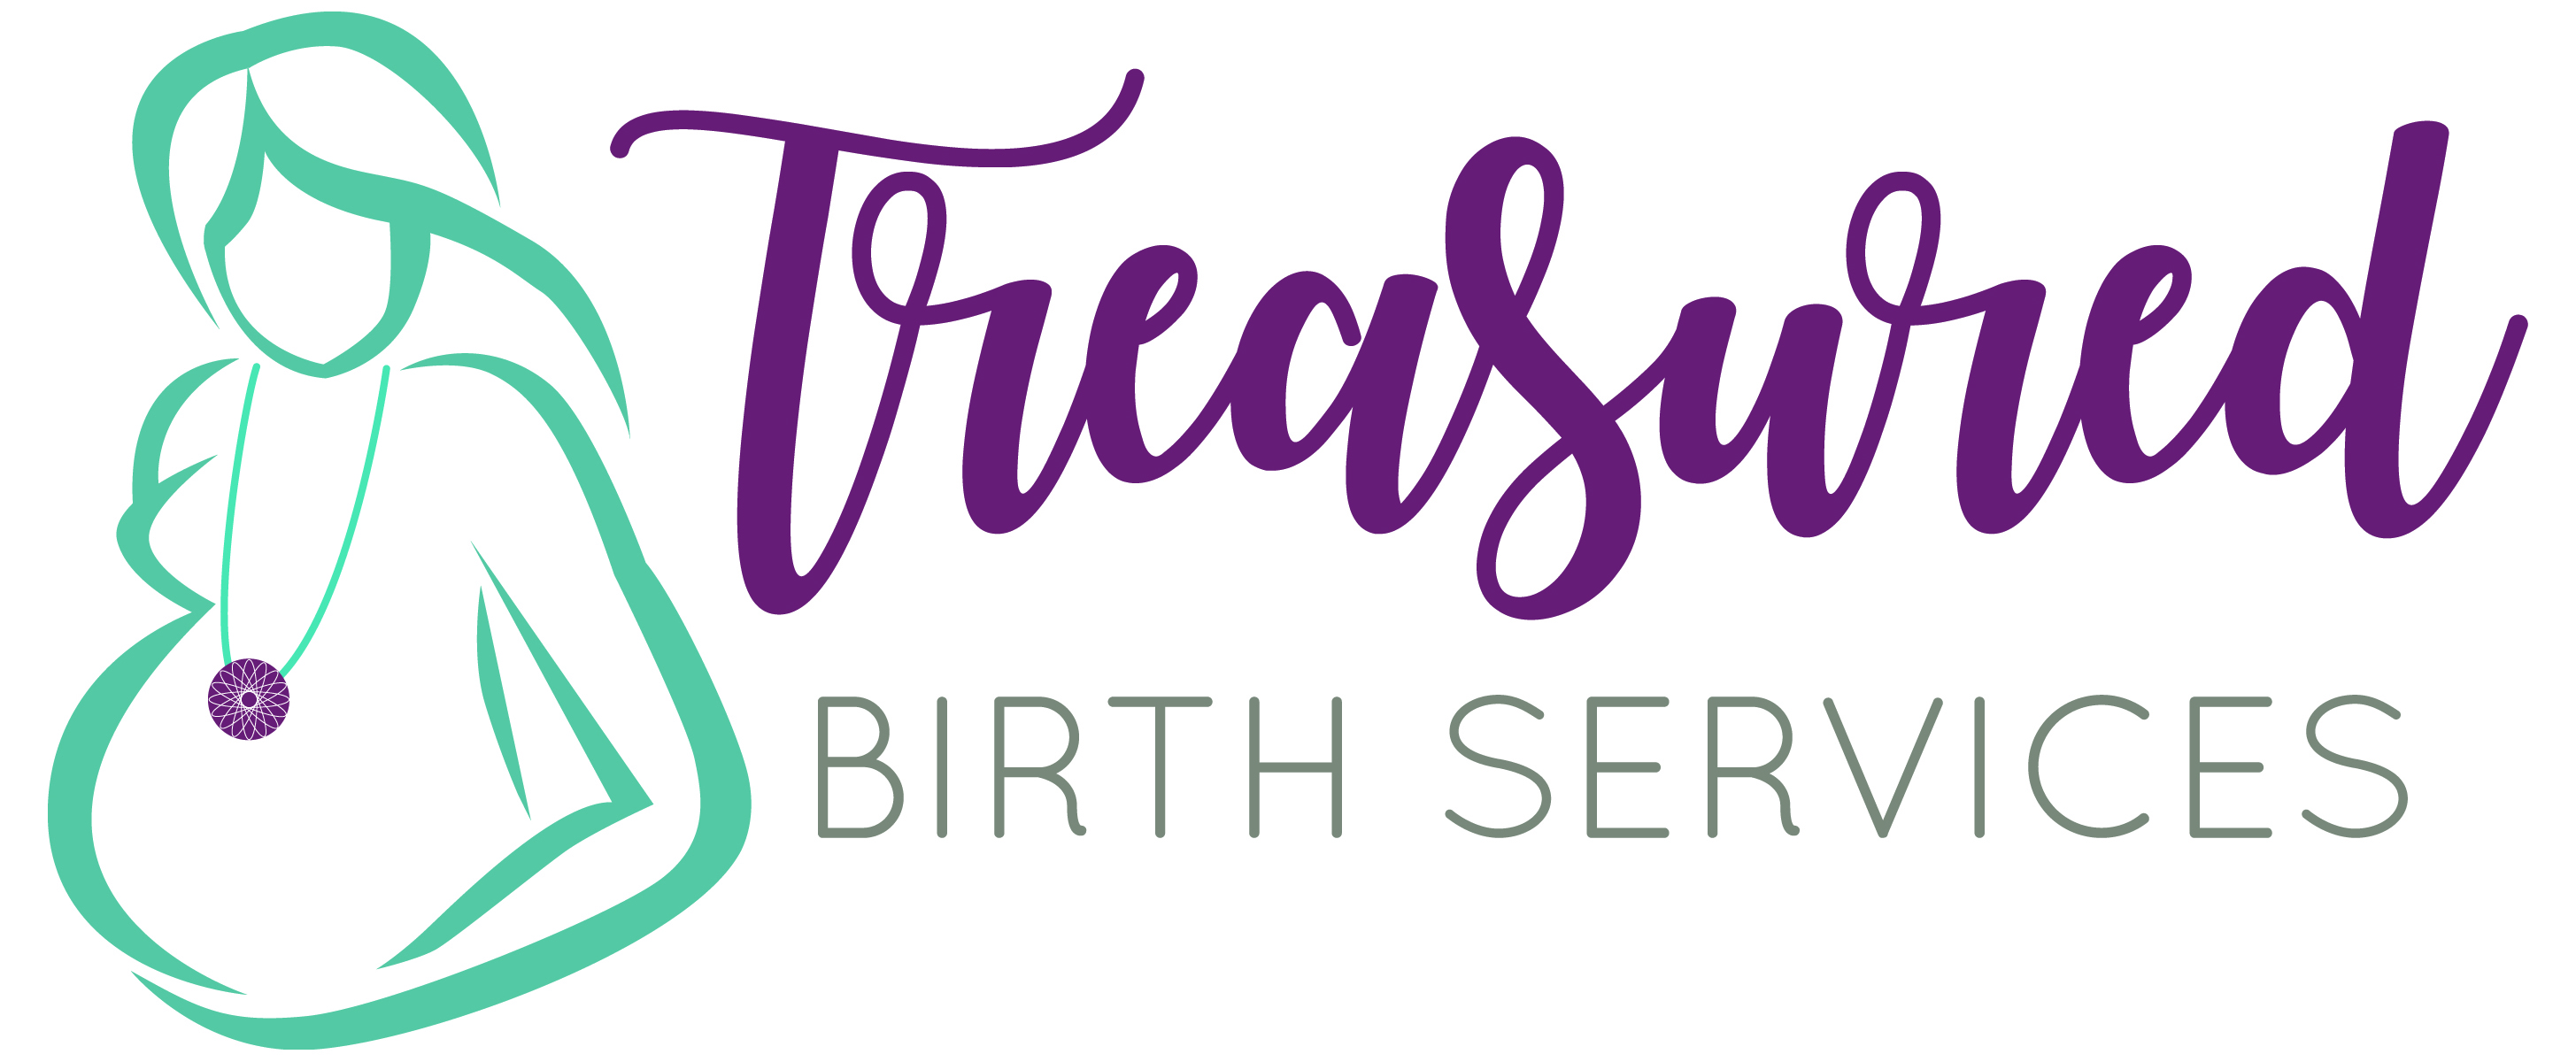 Treasured Birth Services – Utah Birth Services – Hanan Webster – Birth Boot Camp Birth Doula, Postpartum Doula, Belly Binding, and Childbirth Education